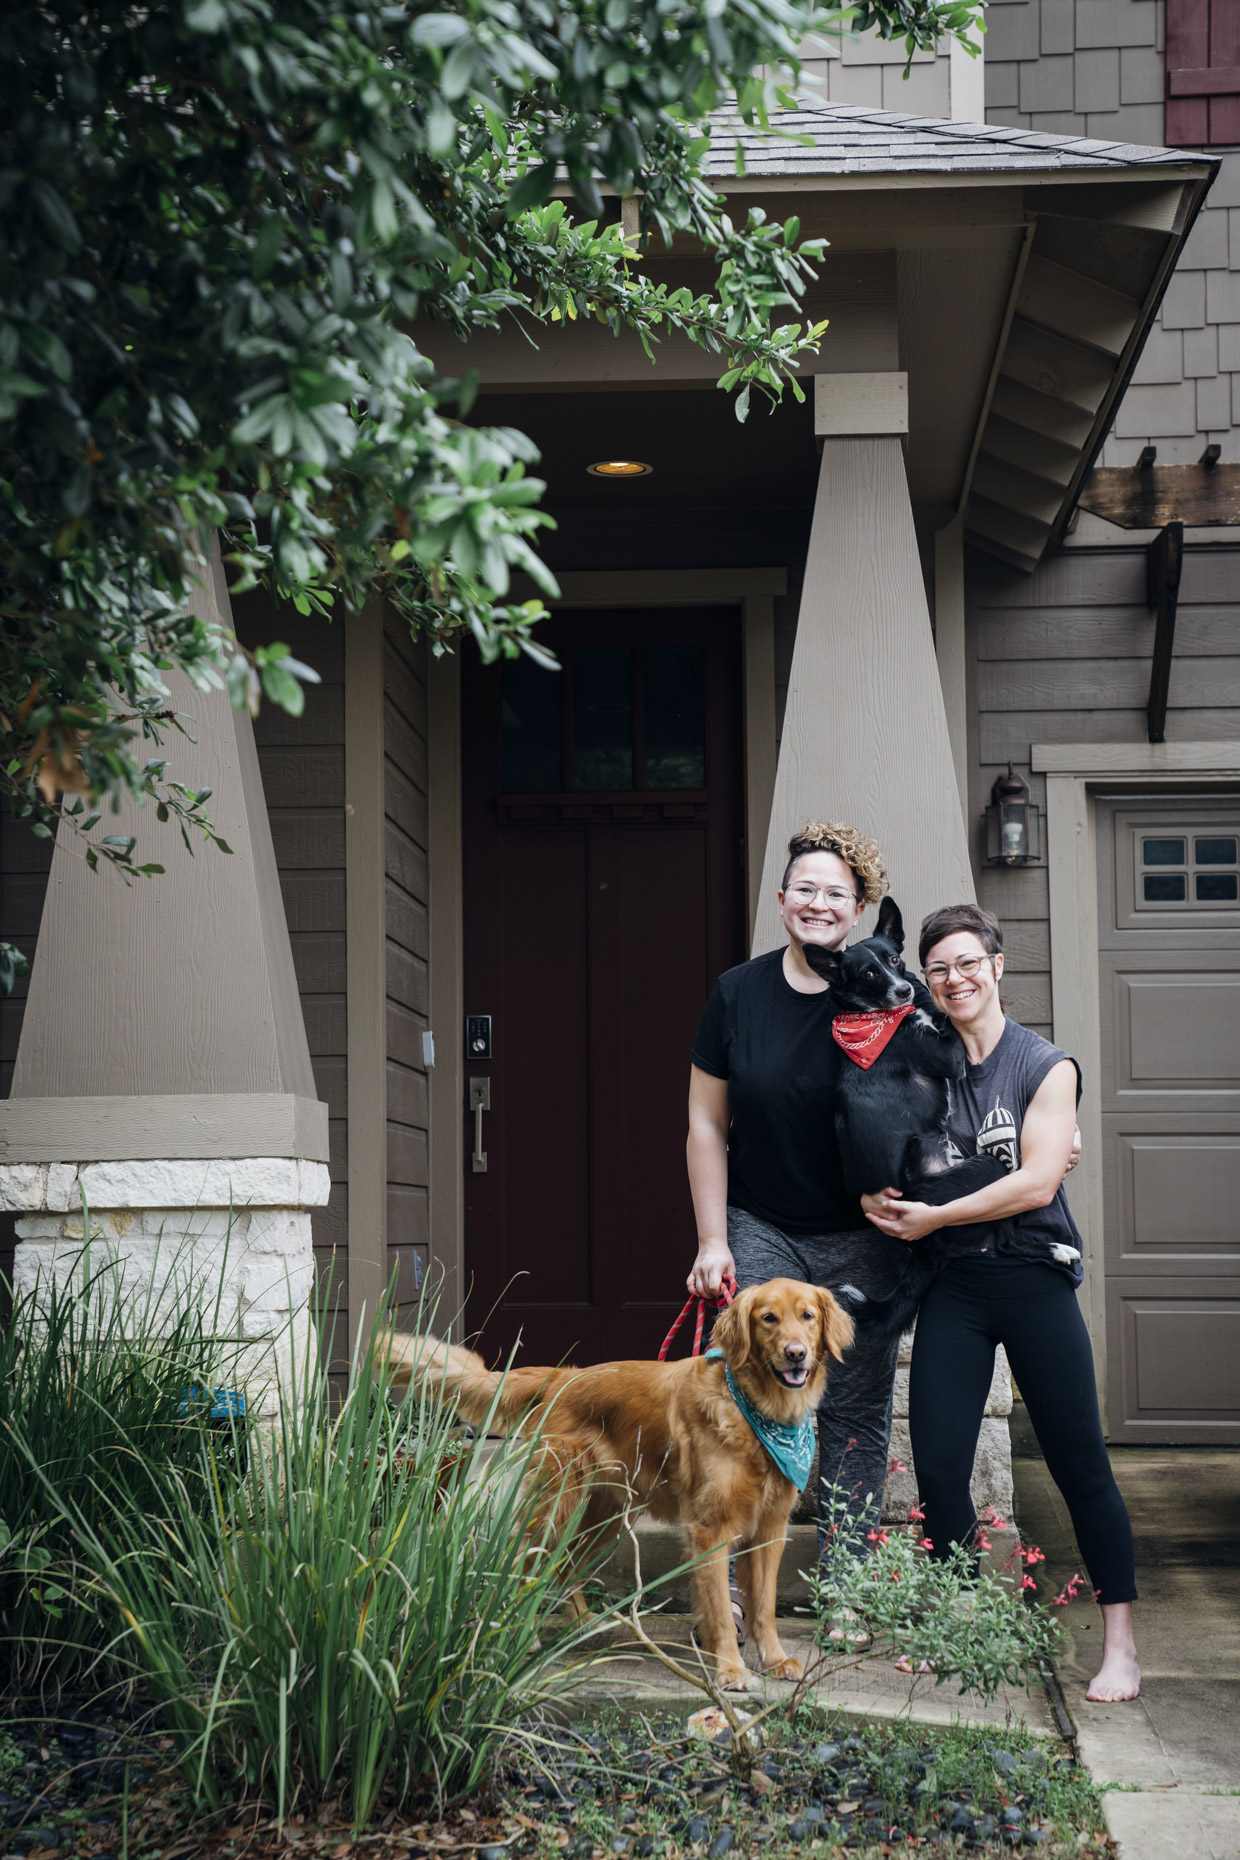 Lesbian couple with dogs in front of house